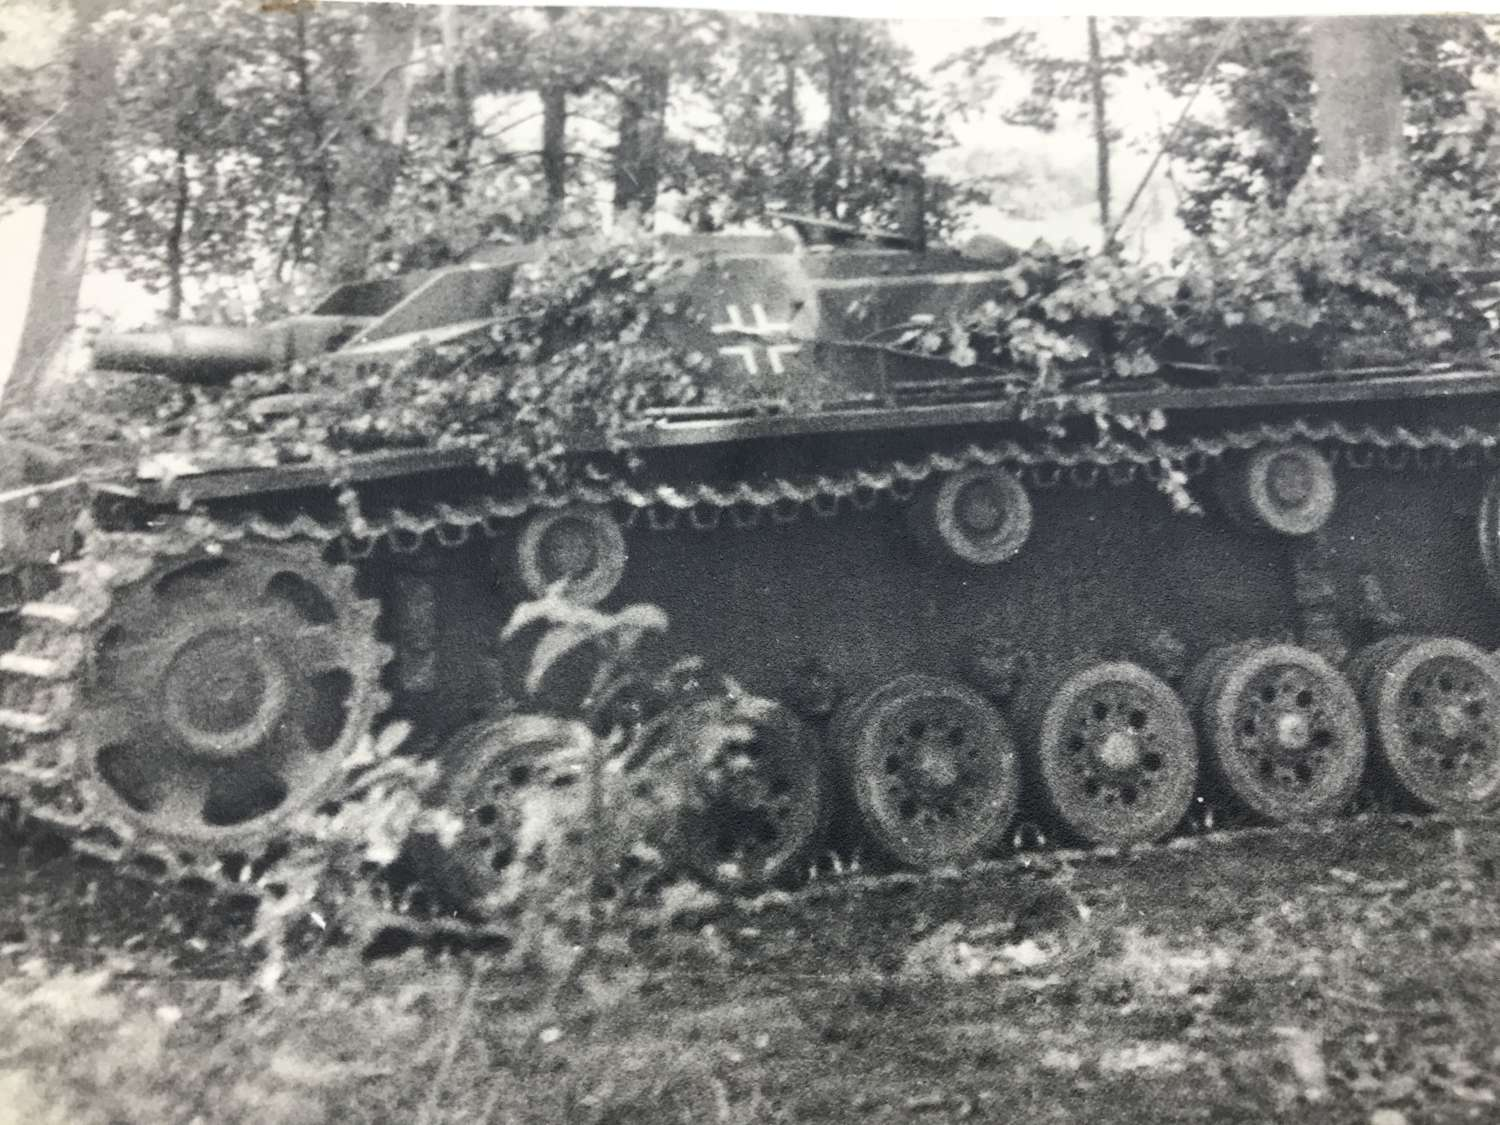 Stug photo dated 10/9/1943